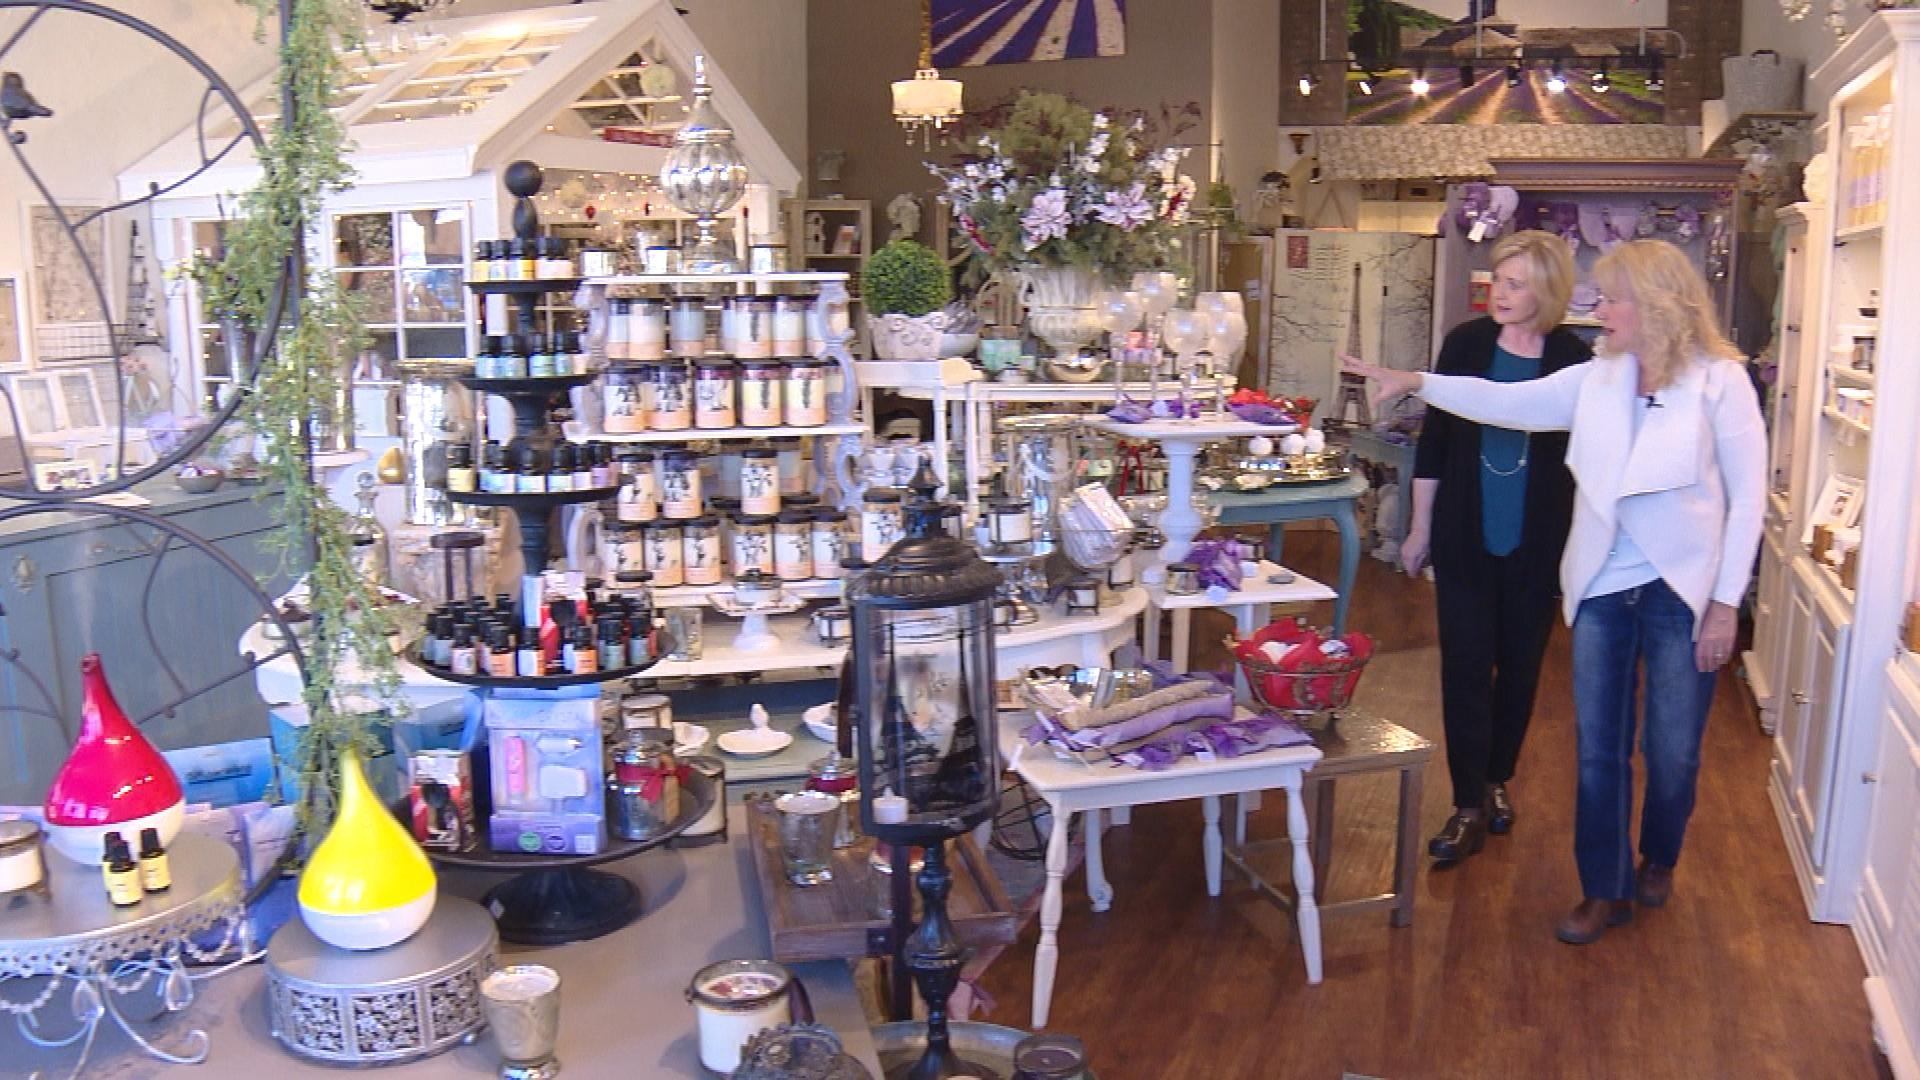 CBS4's Kathy Walsh with Crystal Baldwin in her shop Earth Sweet Botanicals in Golden (credit: CBS)